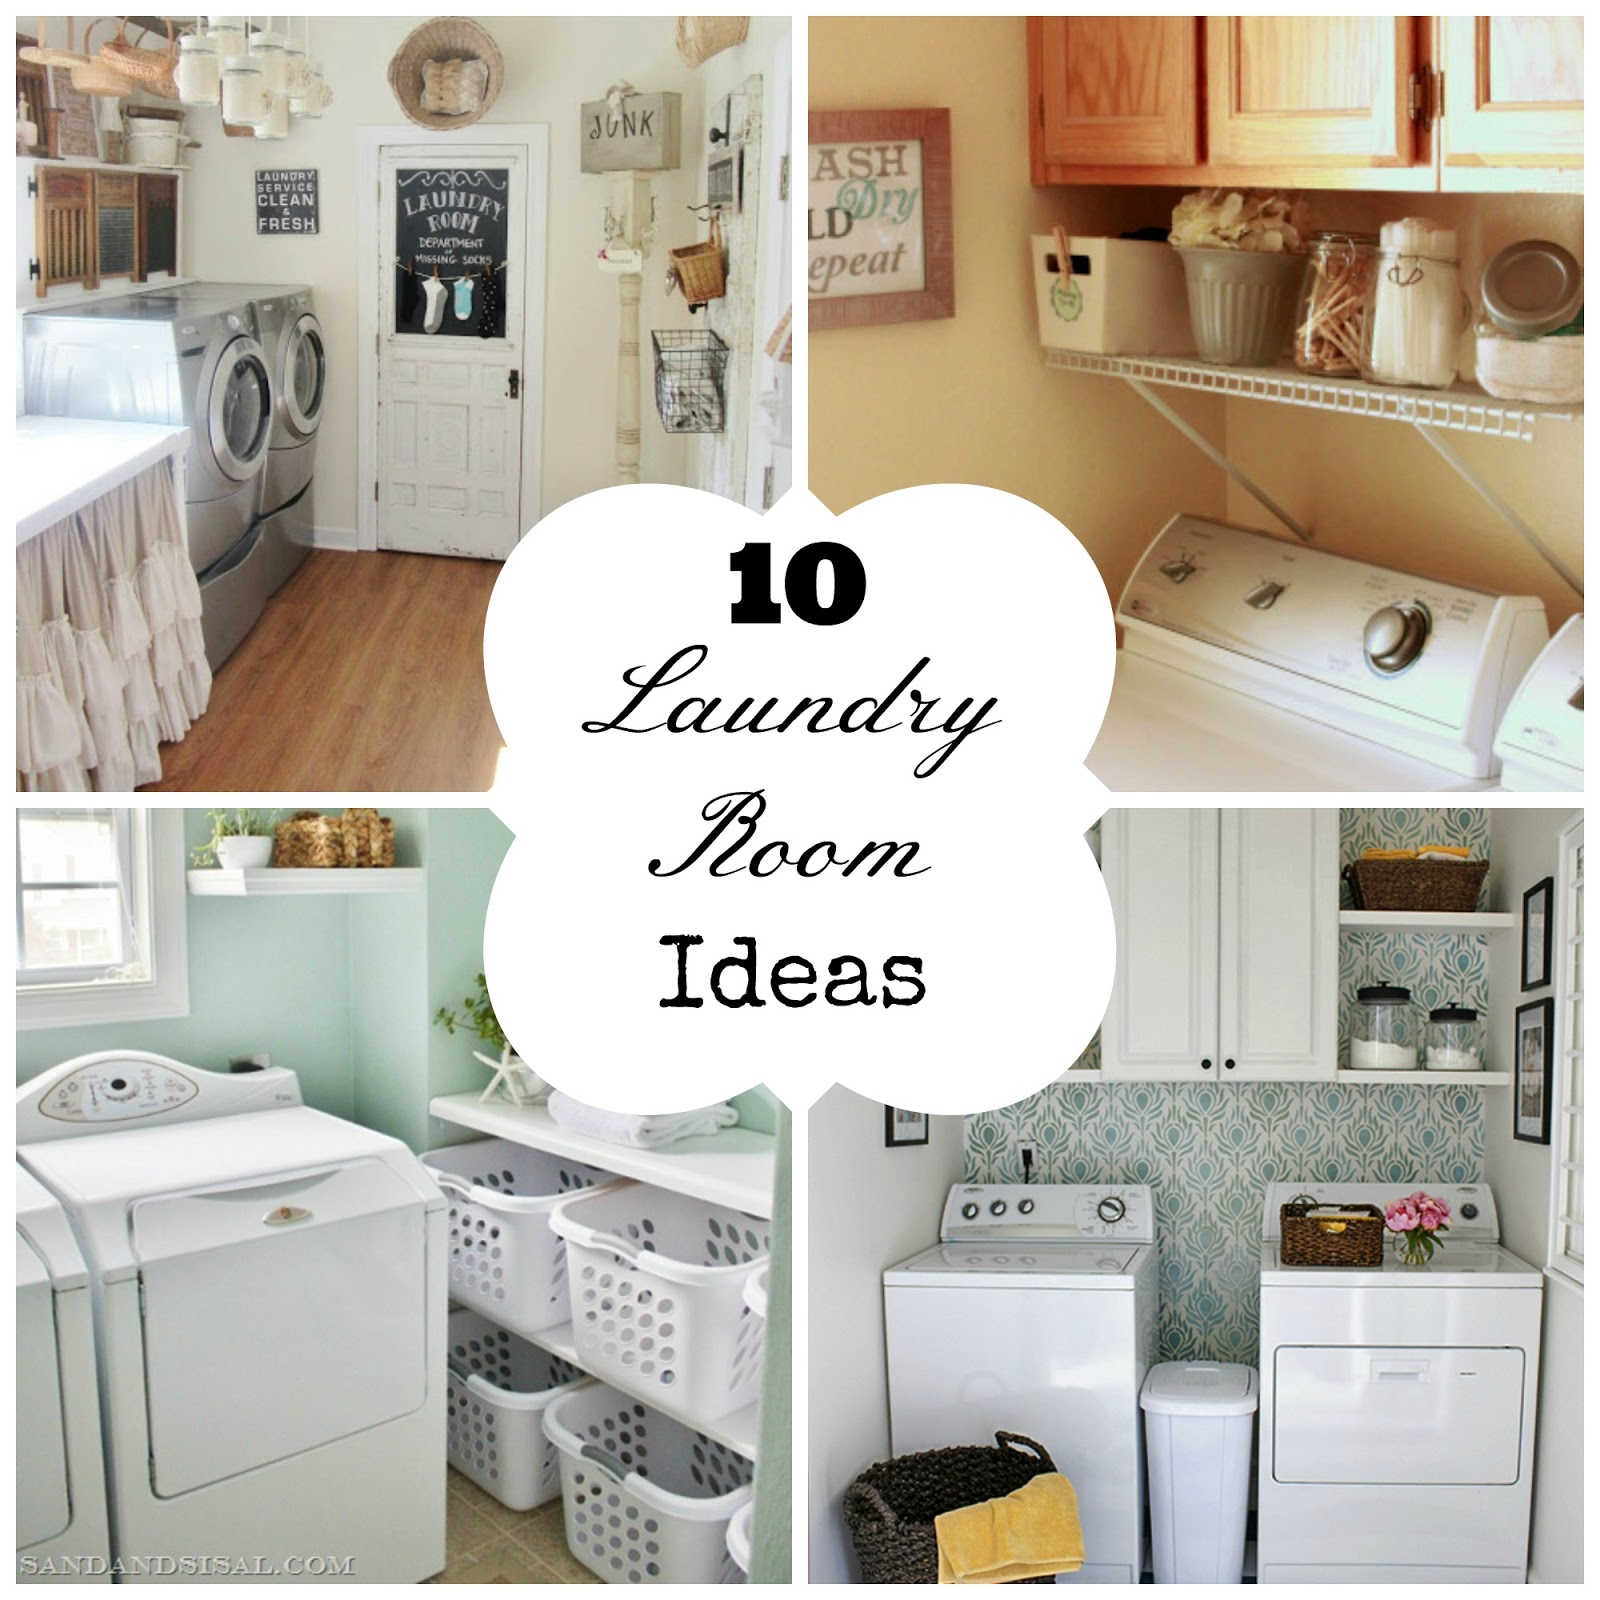 Laundry room ideas for you interior decorating las vegas for Laundry room design ideas